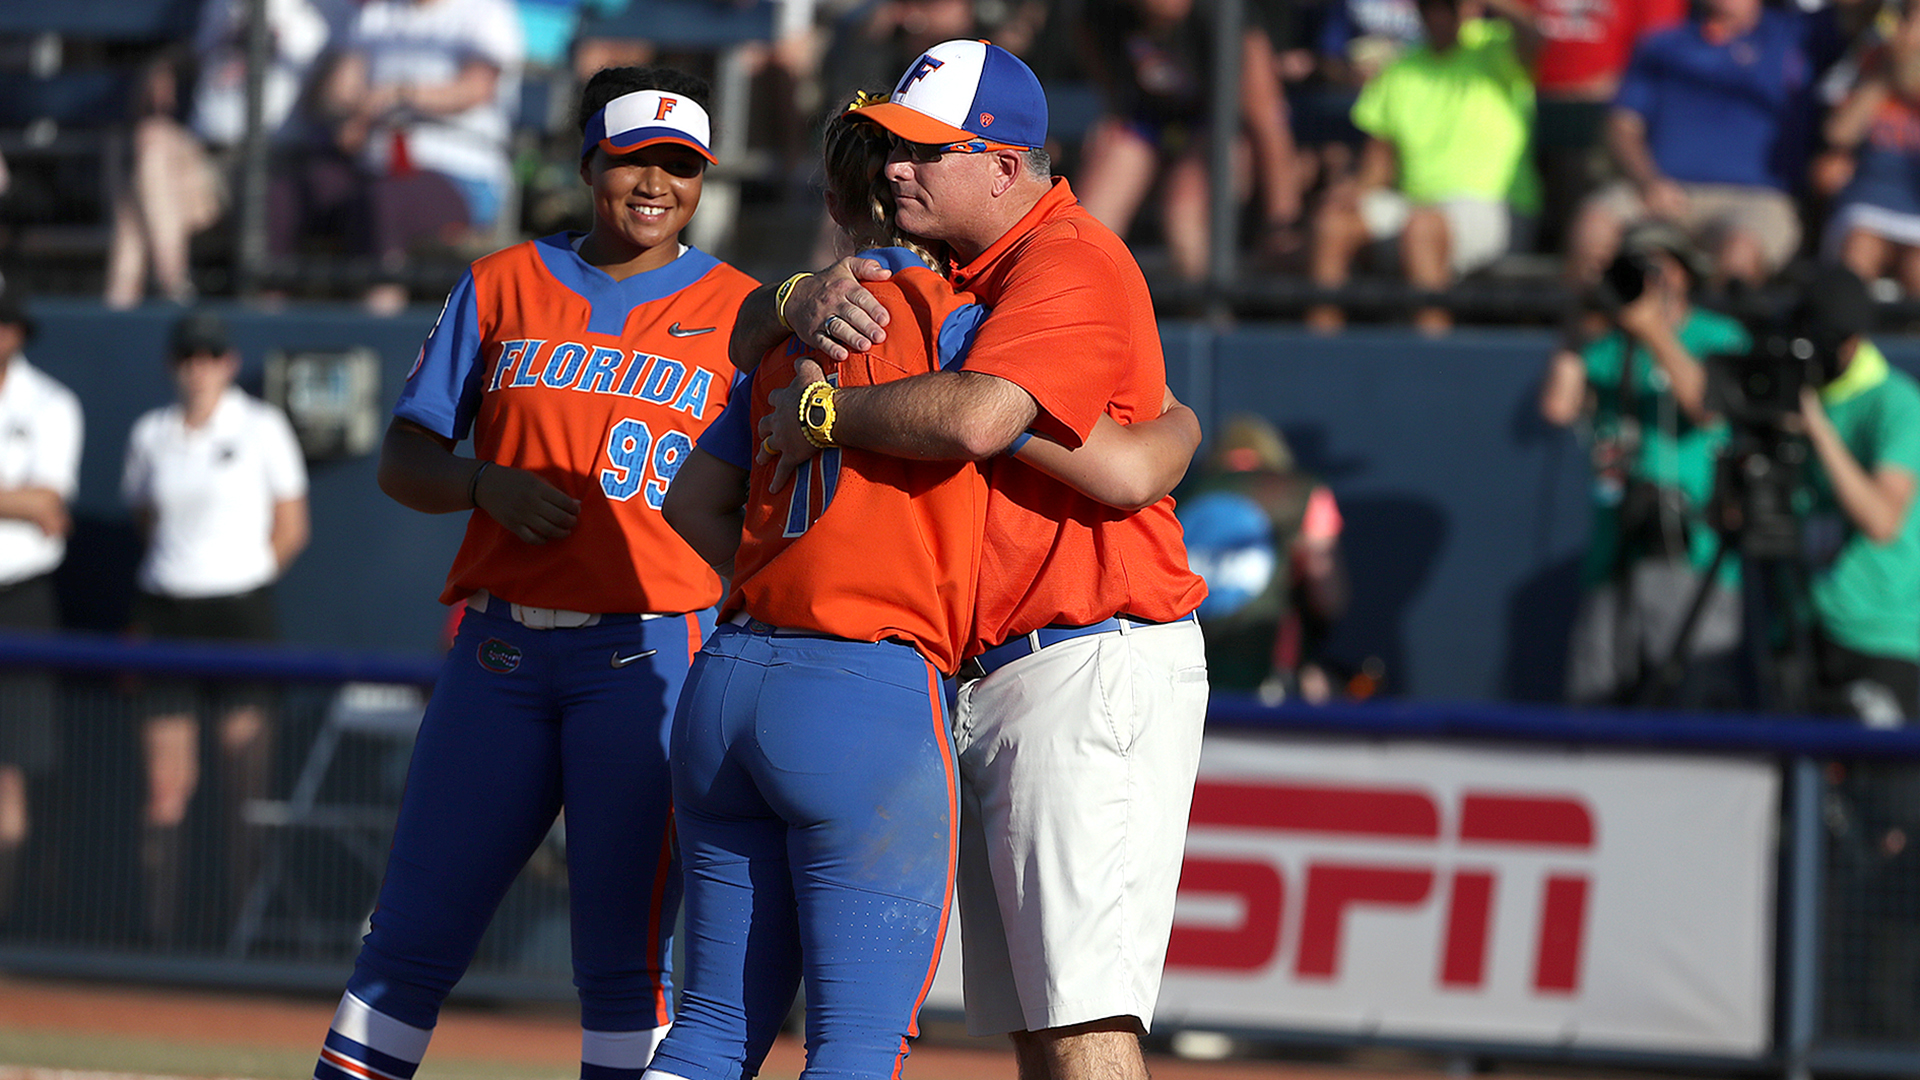 775efe0fb8 Wheaton Picks Up Where Munro Left Off - Florida Gators